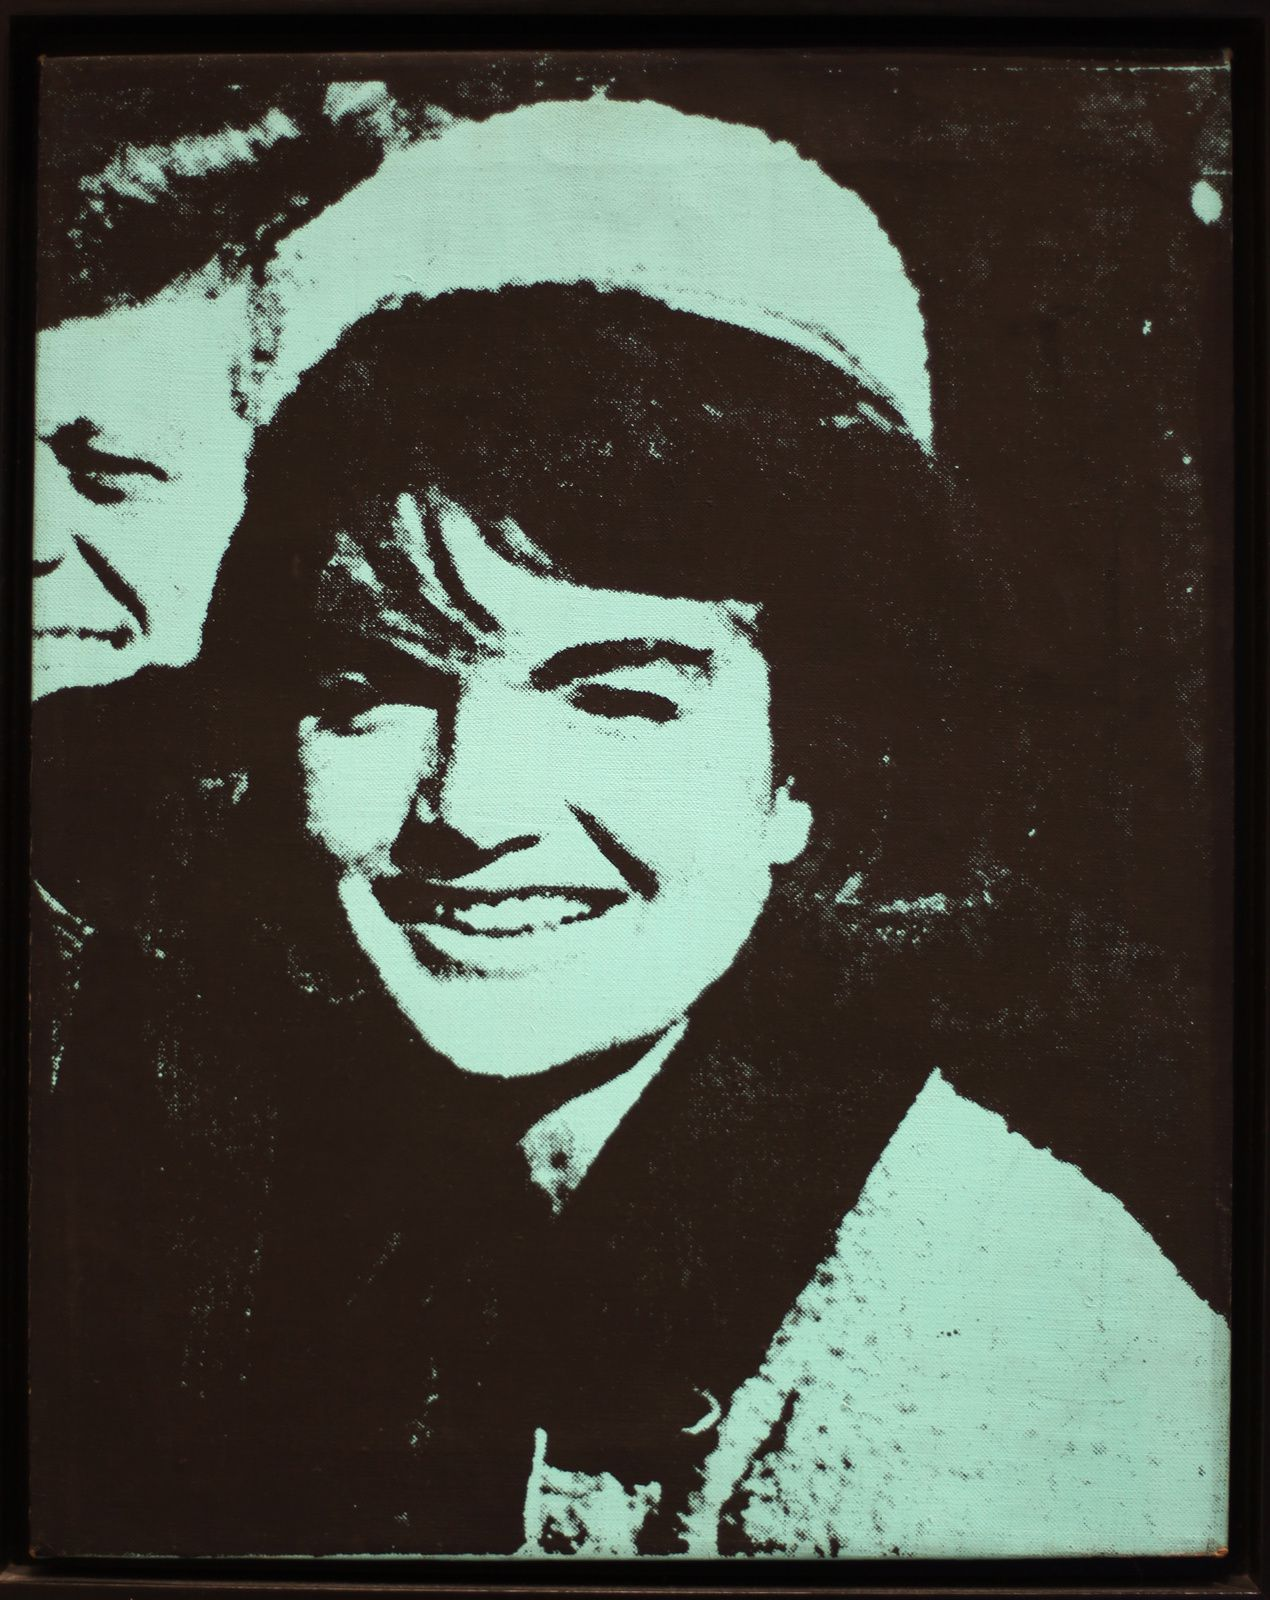 """Jackie"", 1964 d'Andy Warhol © Photo Éric Simon"